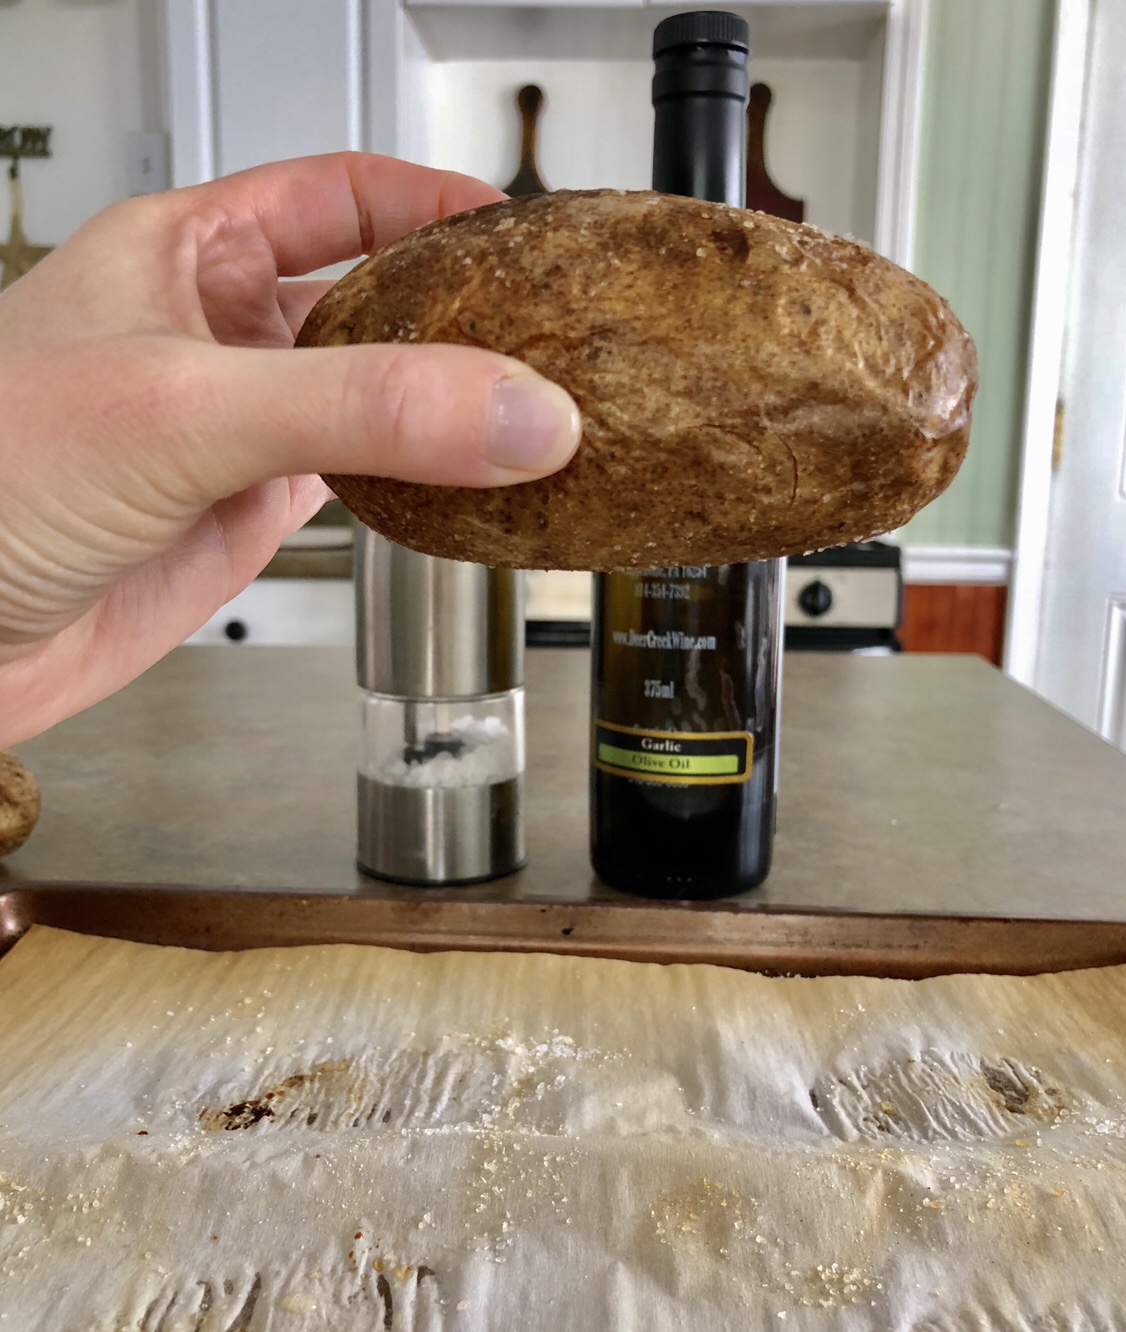 Baked potato held 6 inches over a baking sheet.